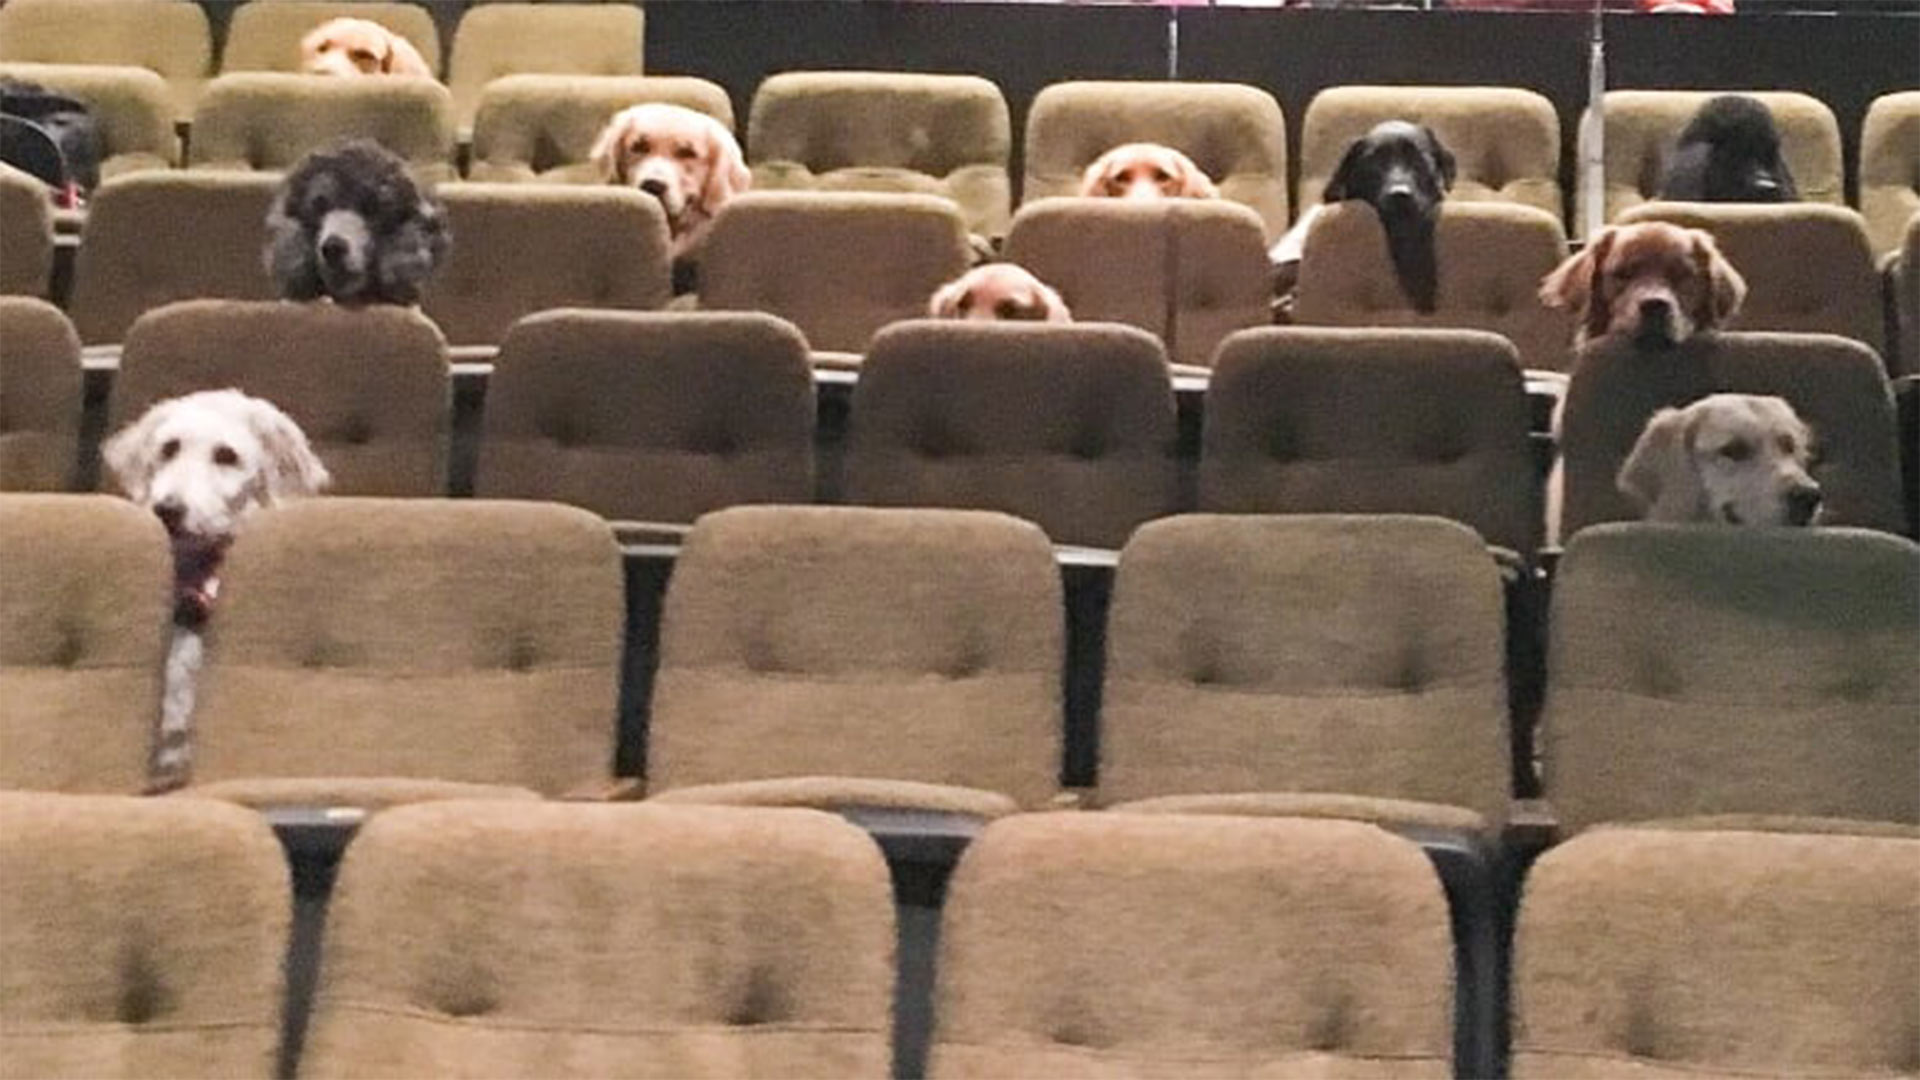 People Can't Stop Looking at This Photo of Service Dogs Sitting Through a Performance of Billy Elliot